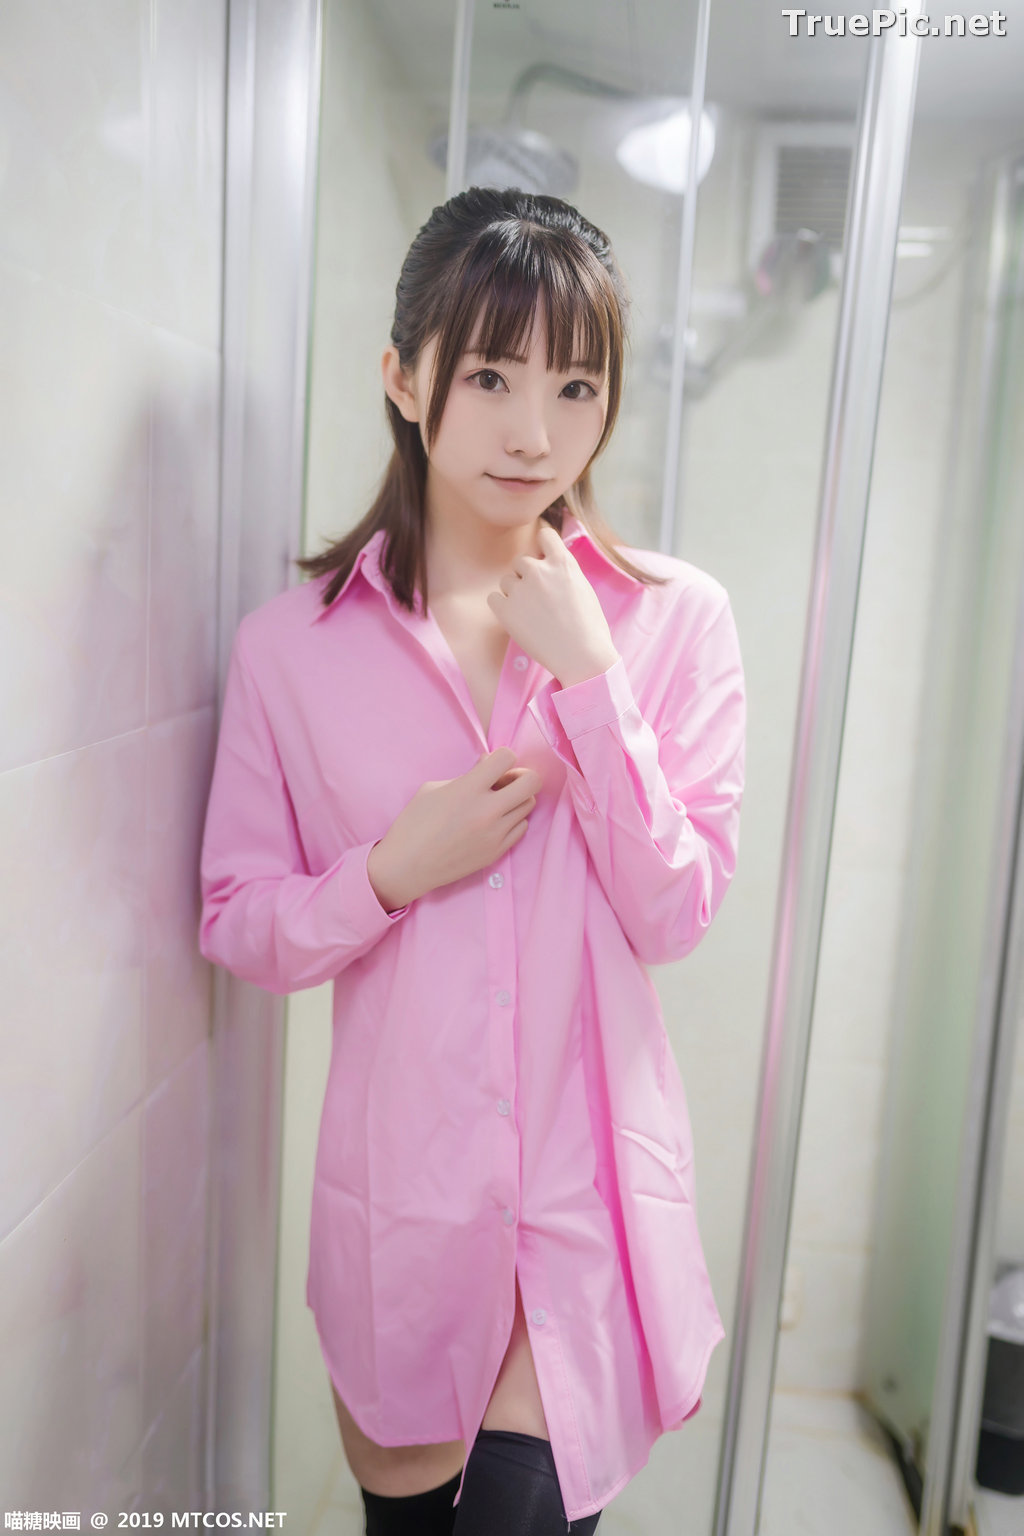 Image [MTCos] 喵糖映画 Vol.022 – Chinese Model – Pink Shirt and Black Stockings - TruePic.net - Picture-10